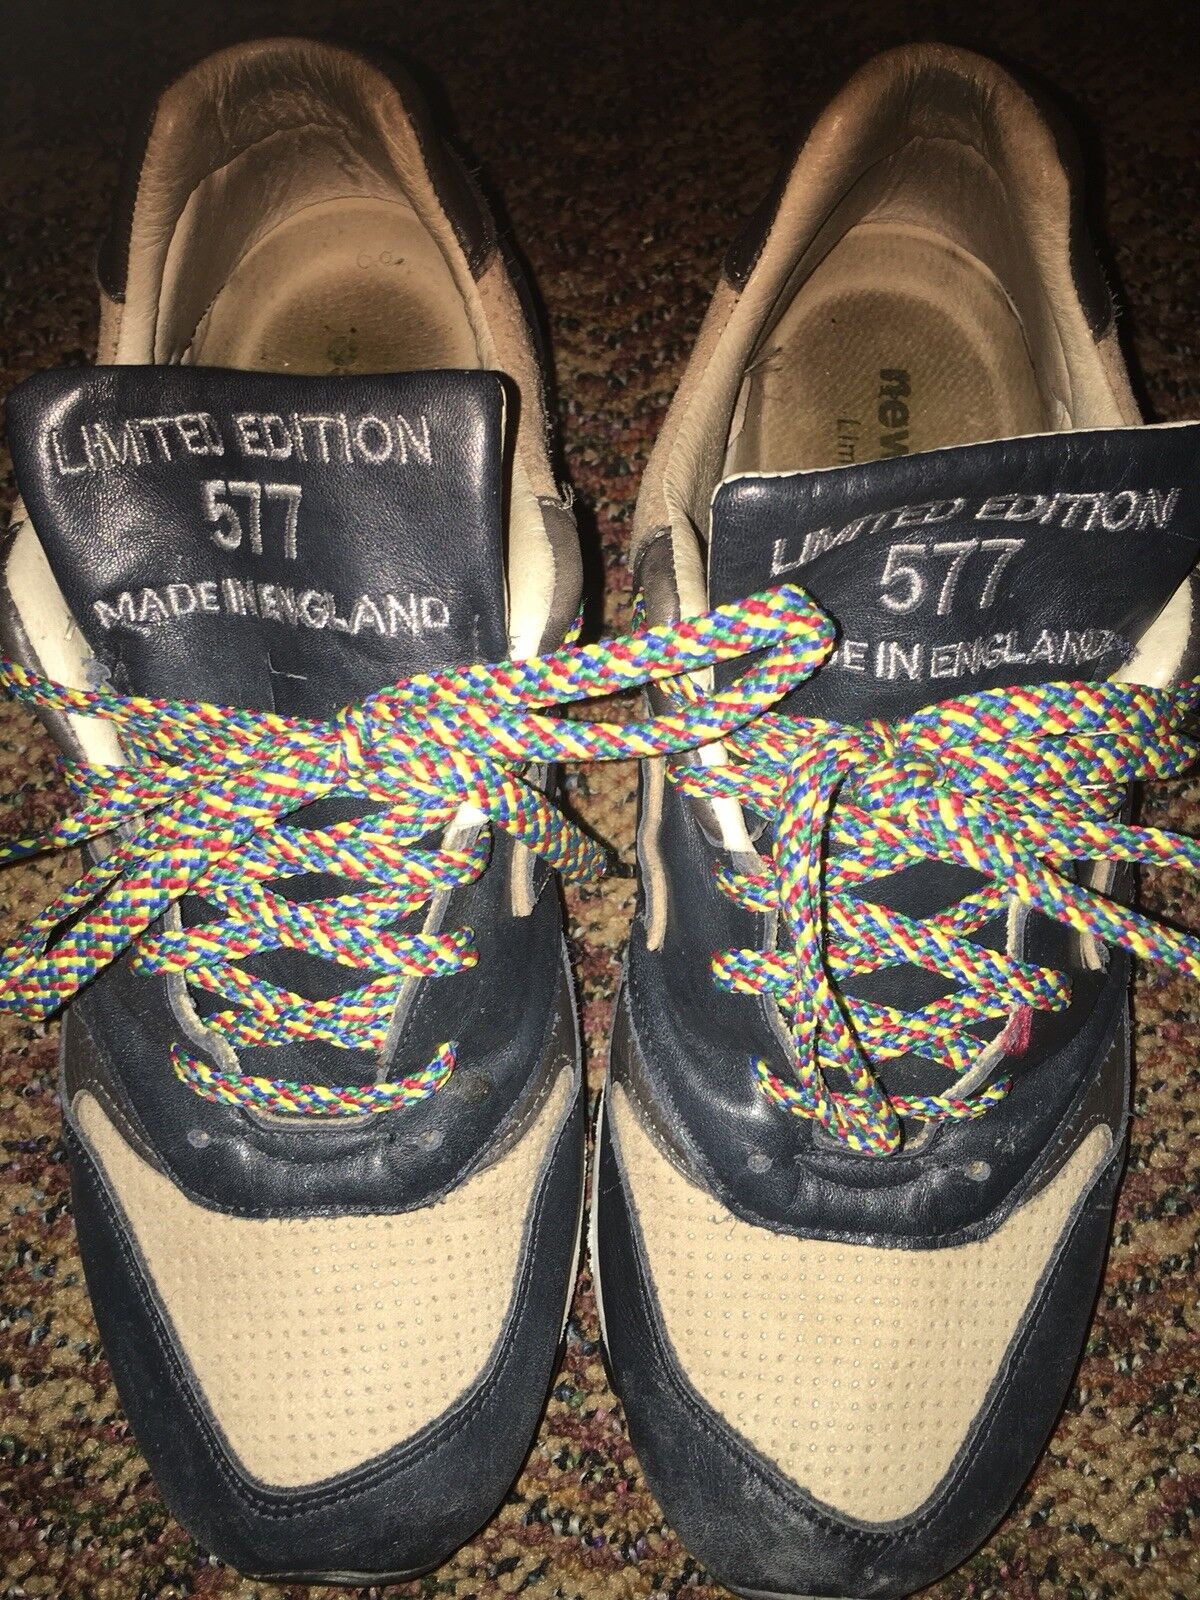 NEW BALANCE LIMITED EDITION   VINTAGE RARE   NO RESERVE   SEE DETAILS